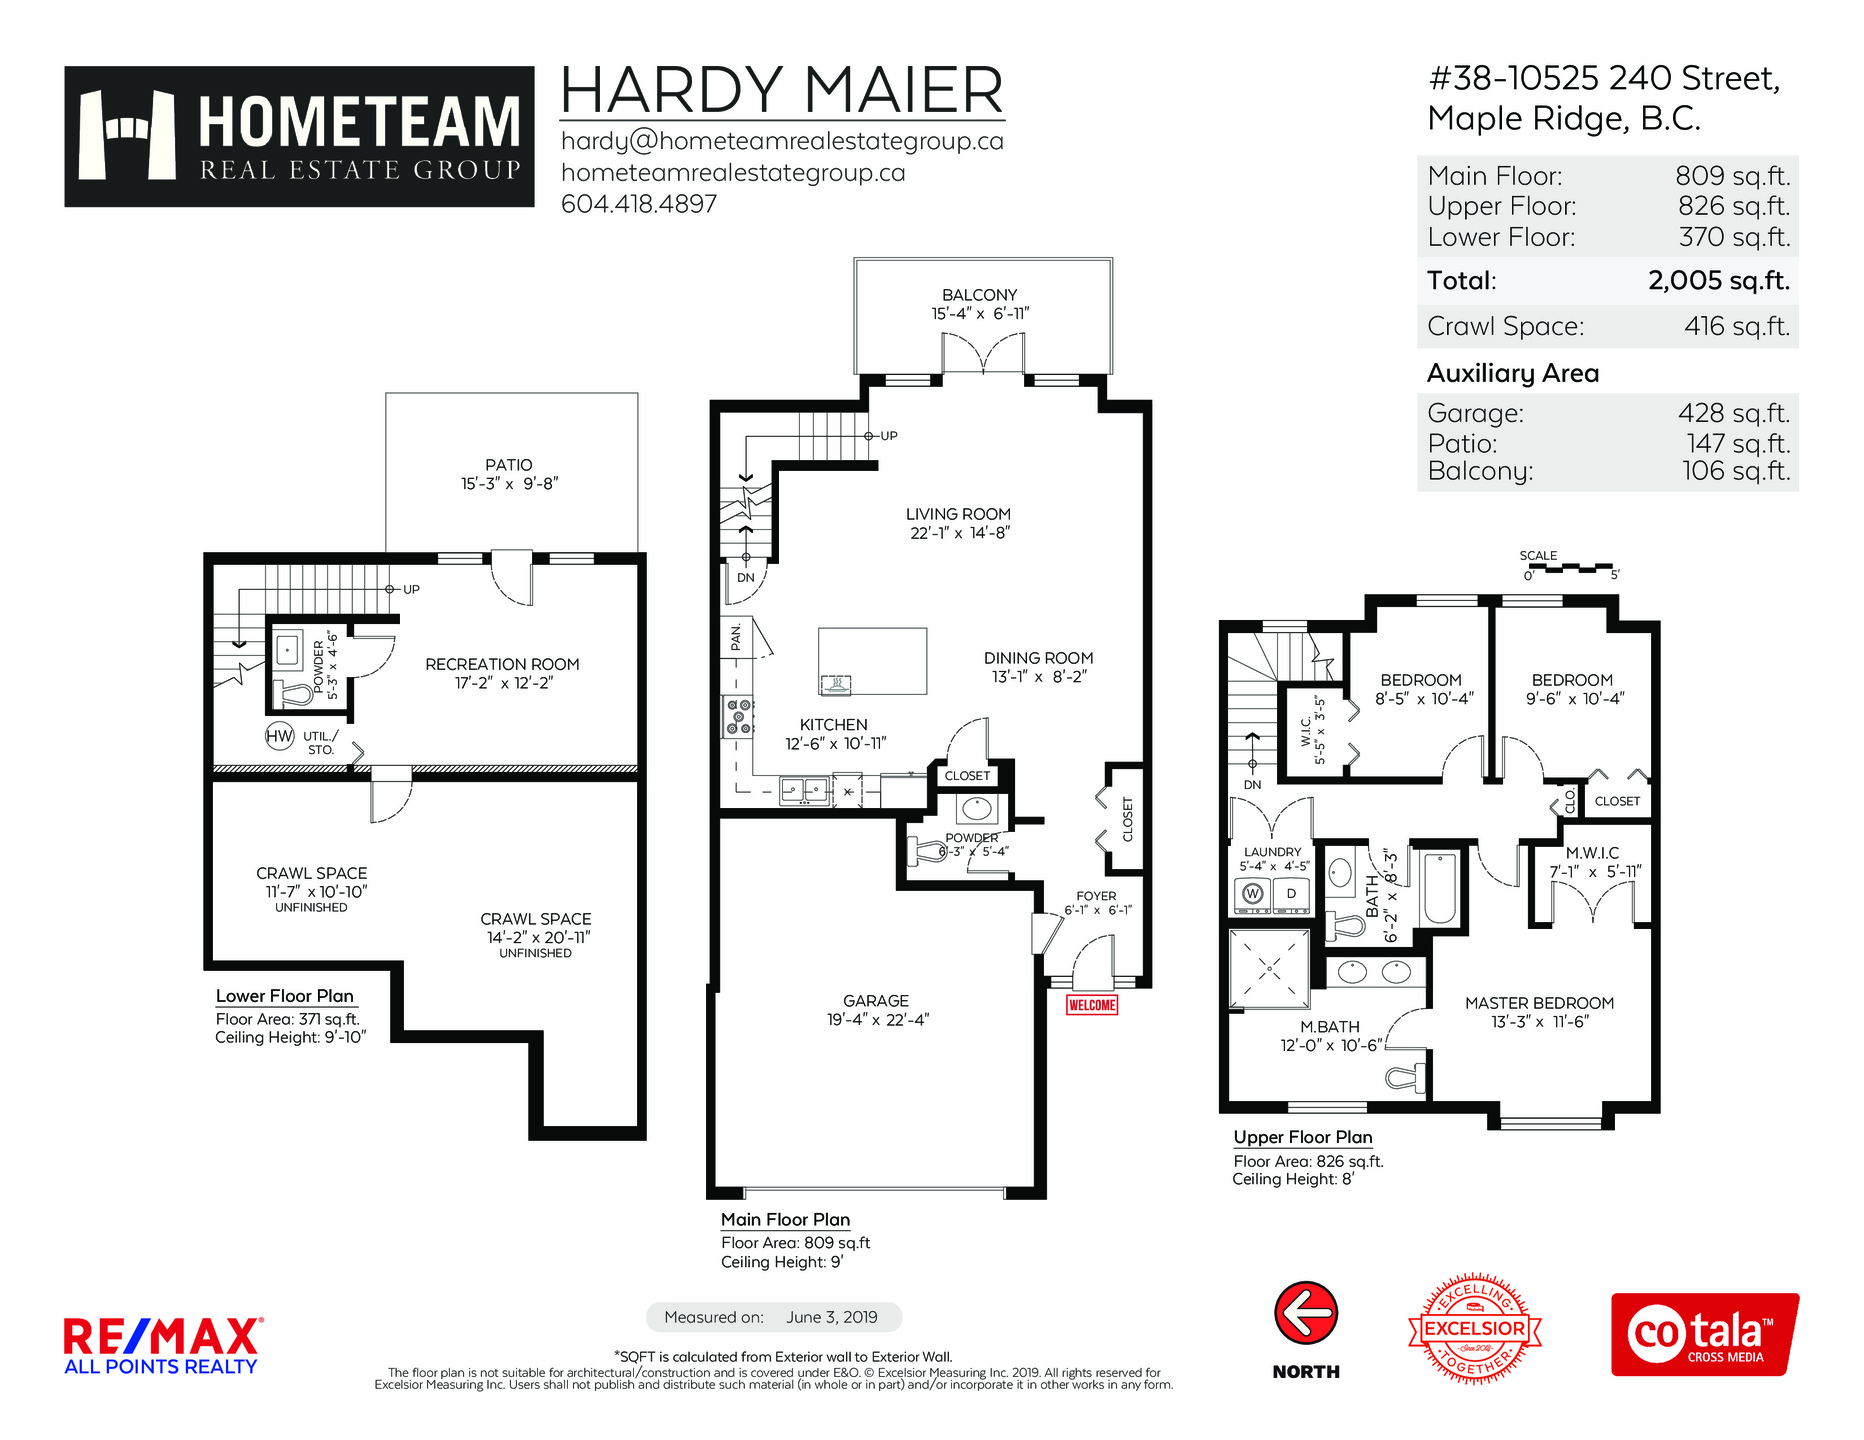 floorplan_branded at 38 - 10525 240 Street, Albion, Maple Ridge